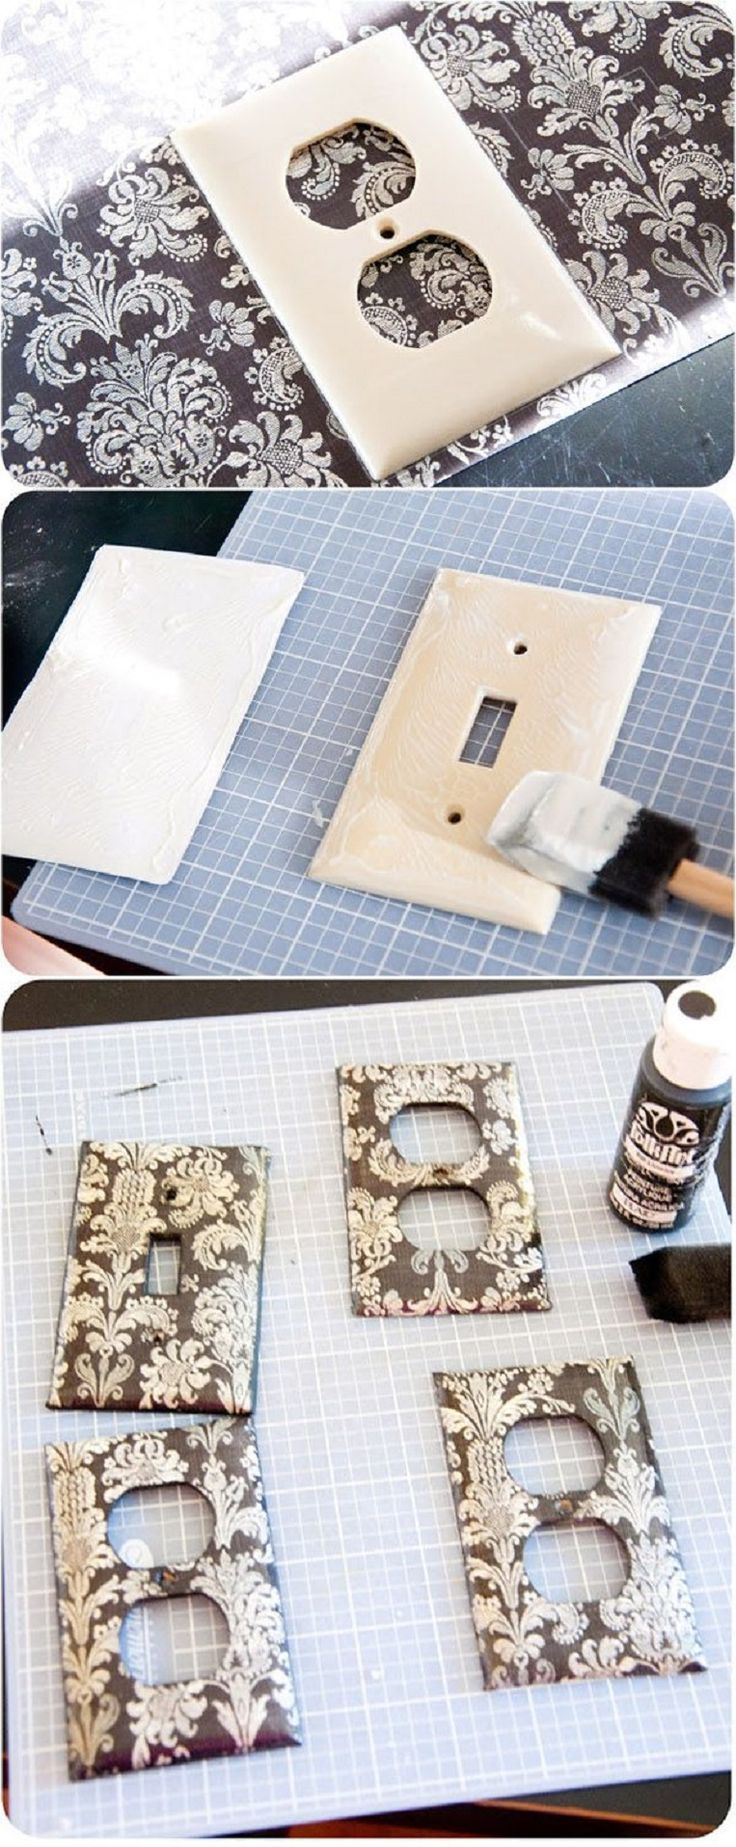 DIY switch plate covers wrapped in scrapbook paper could really make a big impact with very little effort or expense.